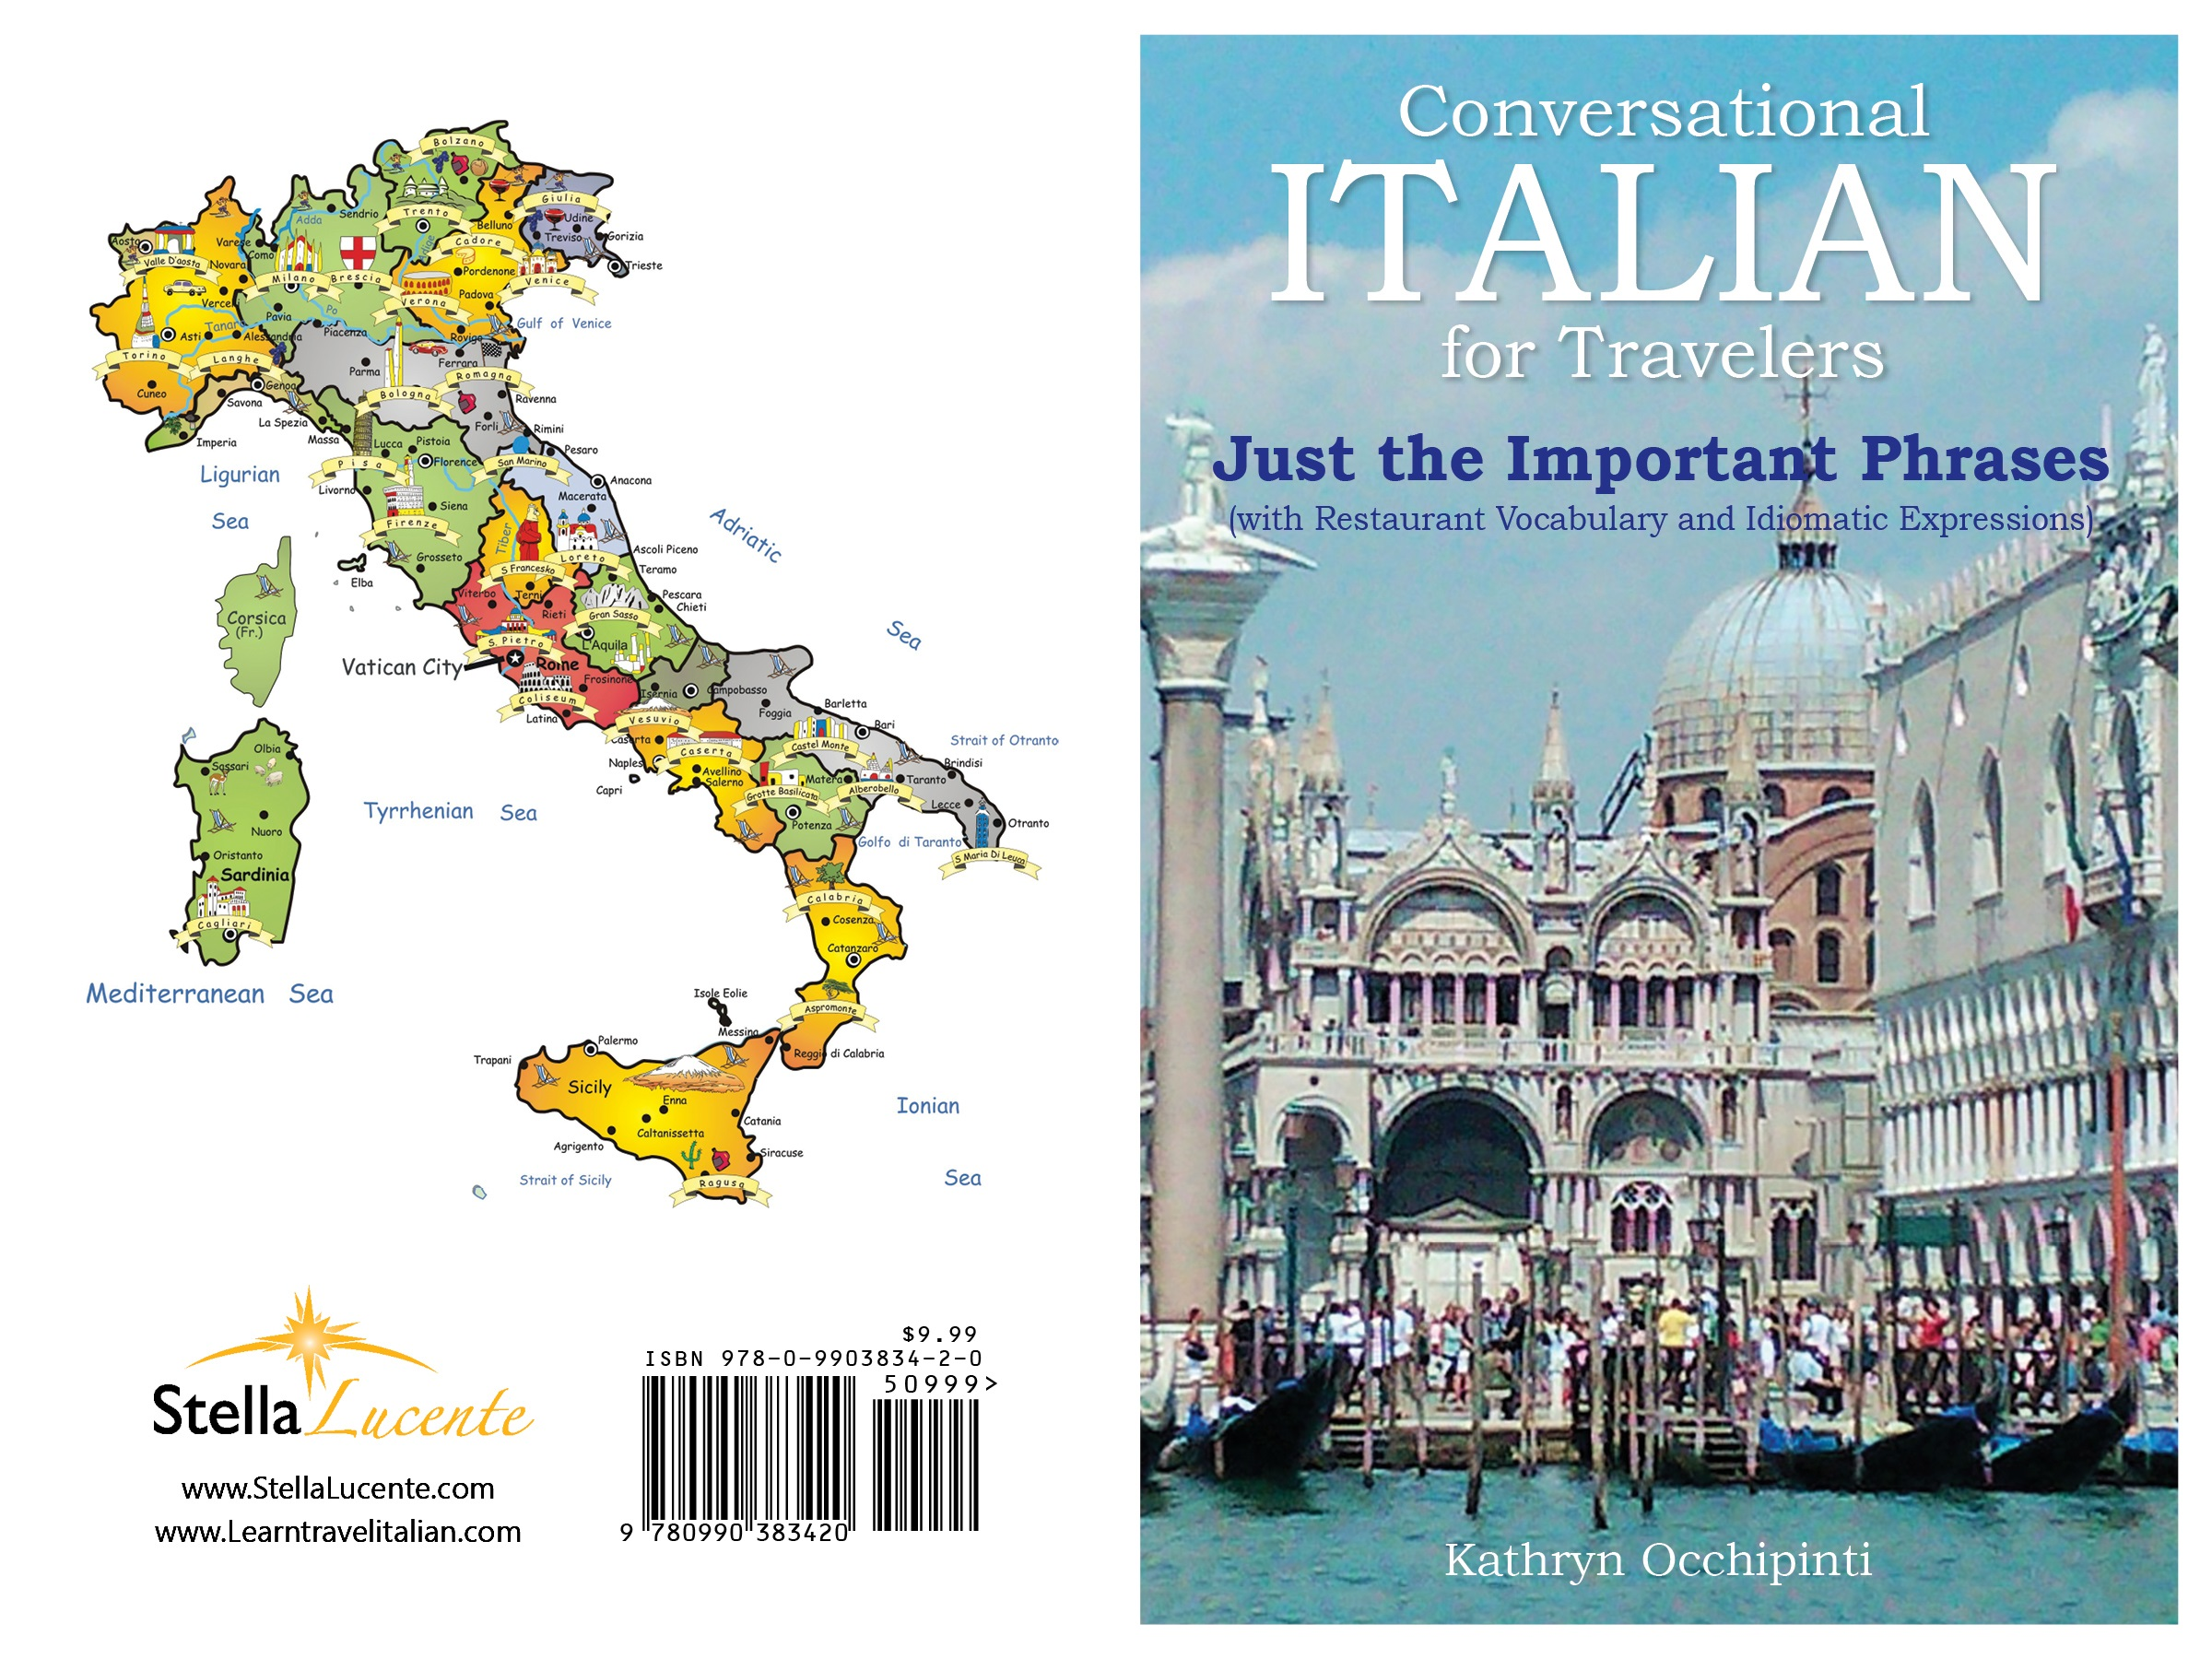 Conversational Italian Everything You Need To Know To Enjoy Your Trip To Italy